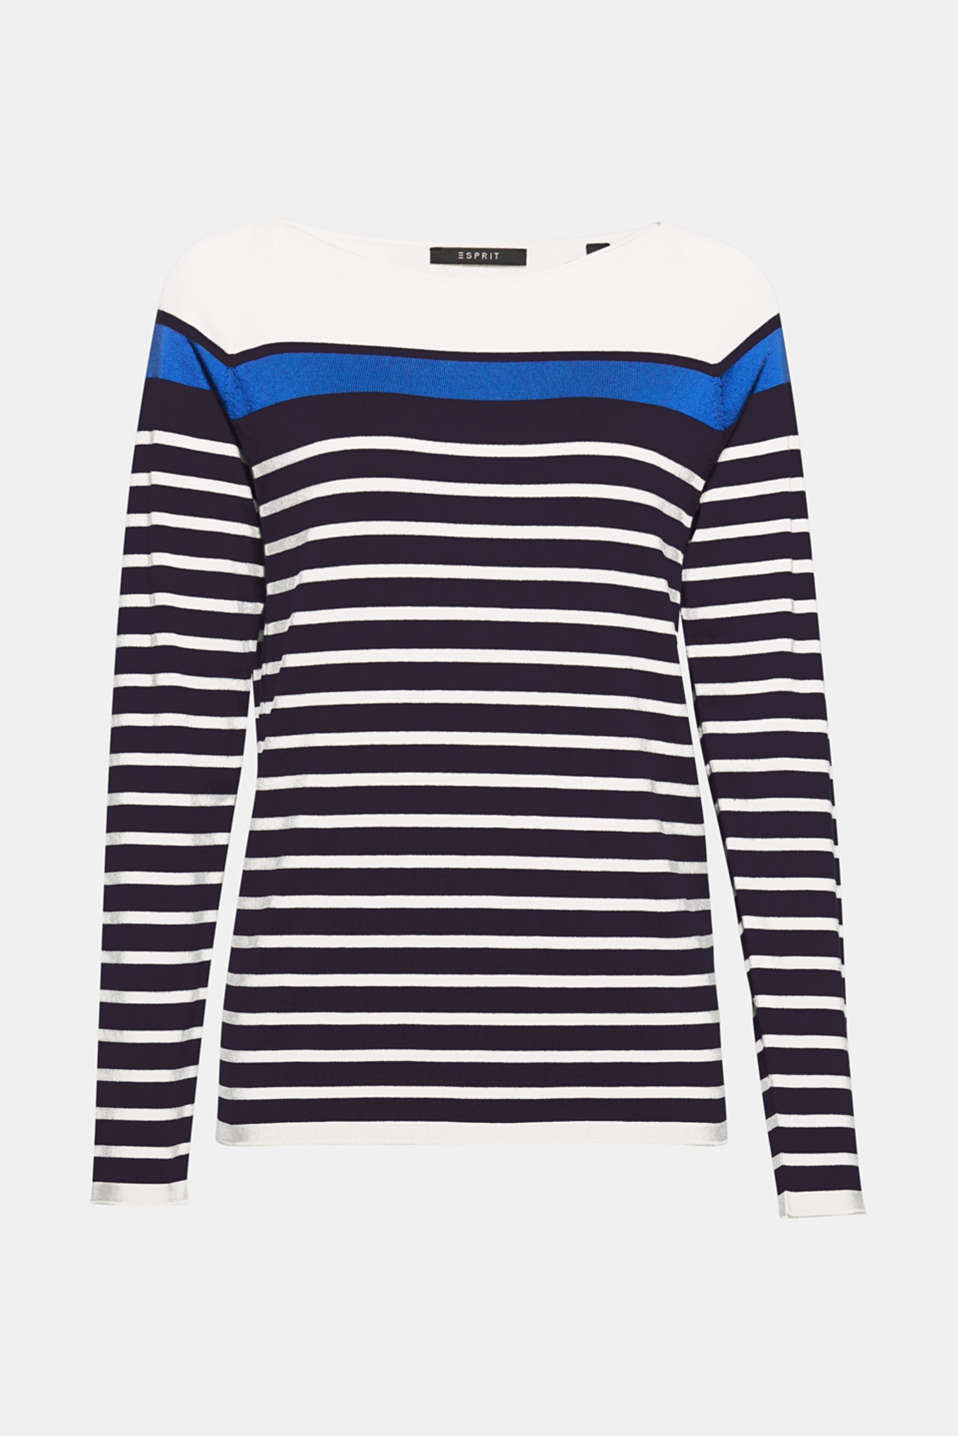 The mixture of stripes and colour blocking makes this soft fine knit jumper fashionable and easy to mix and match at the same time!